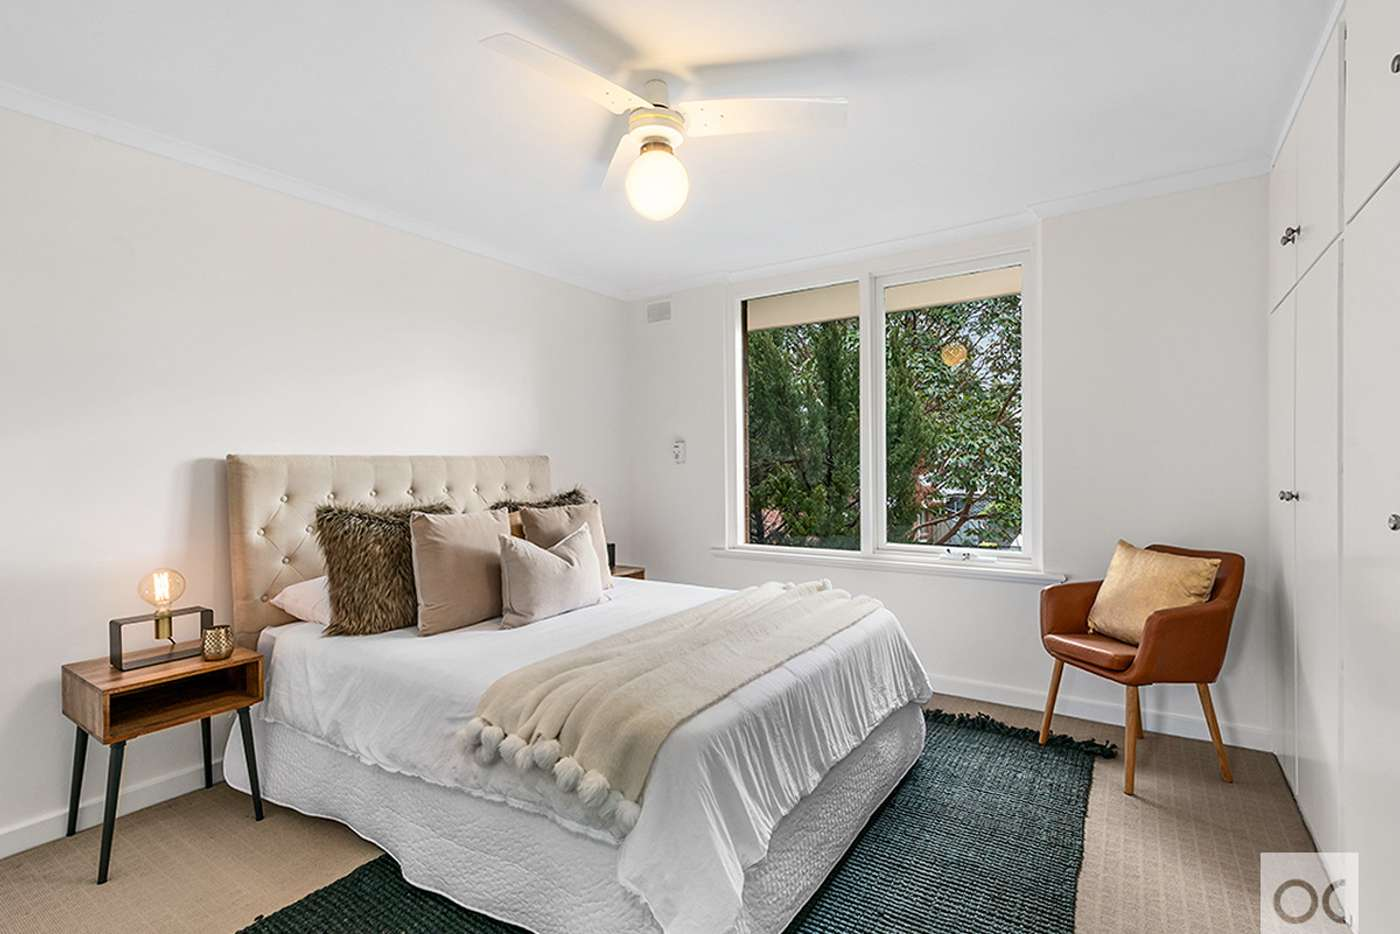 Fifth view of Homely unit listing, 2/46 Queen Street, Norwood SA 5067